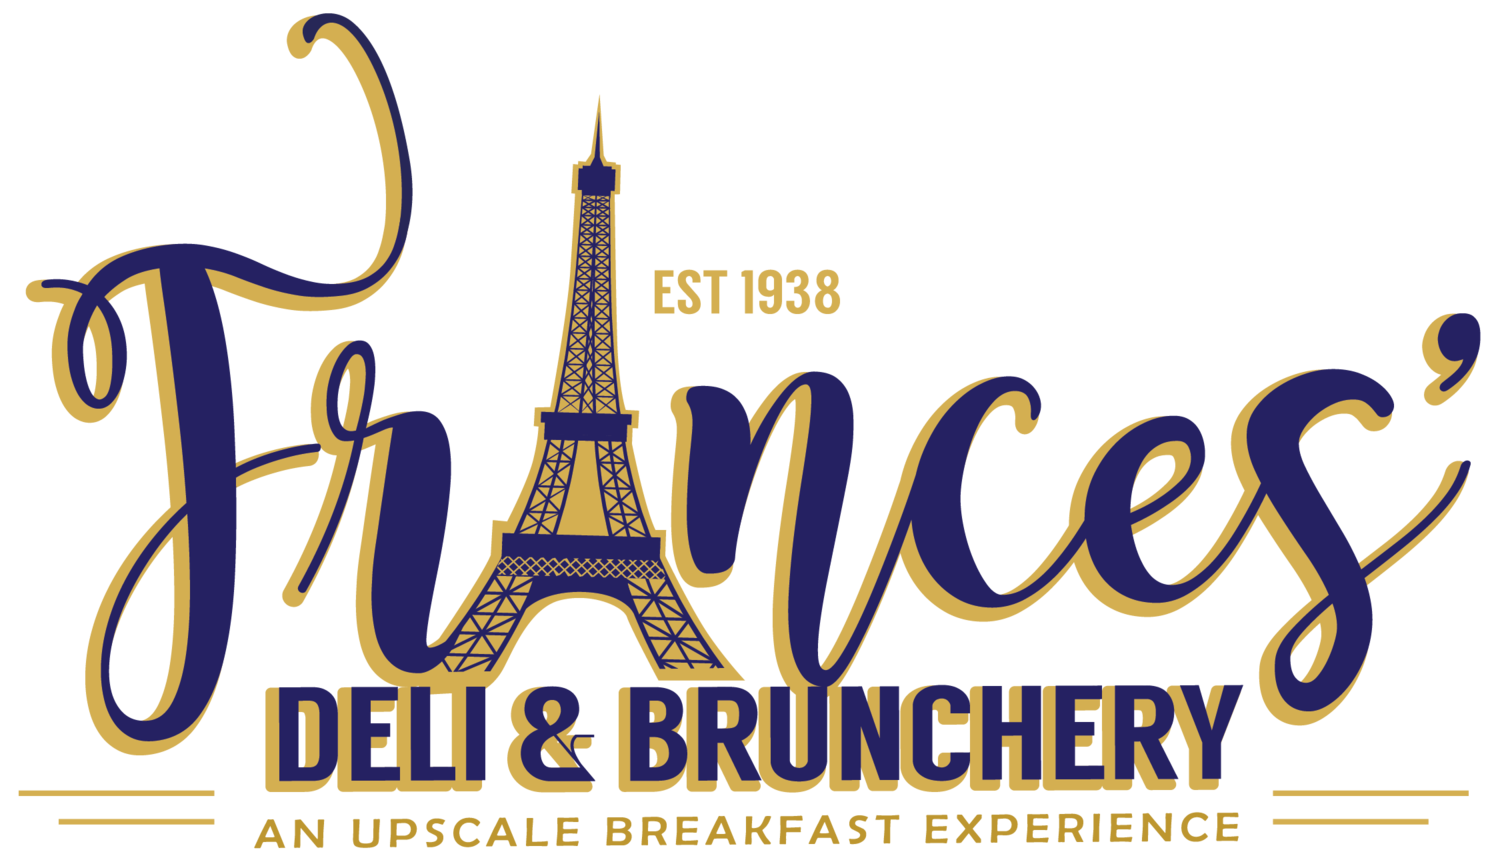 Frances' Deli & Brunchery